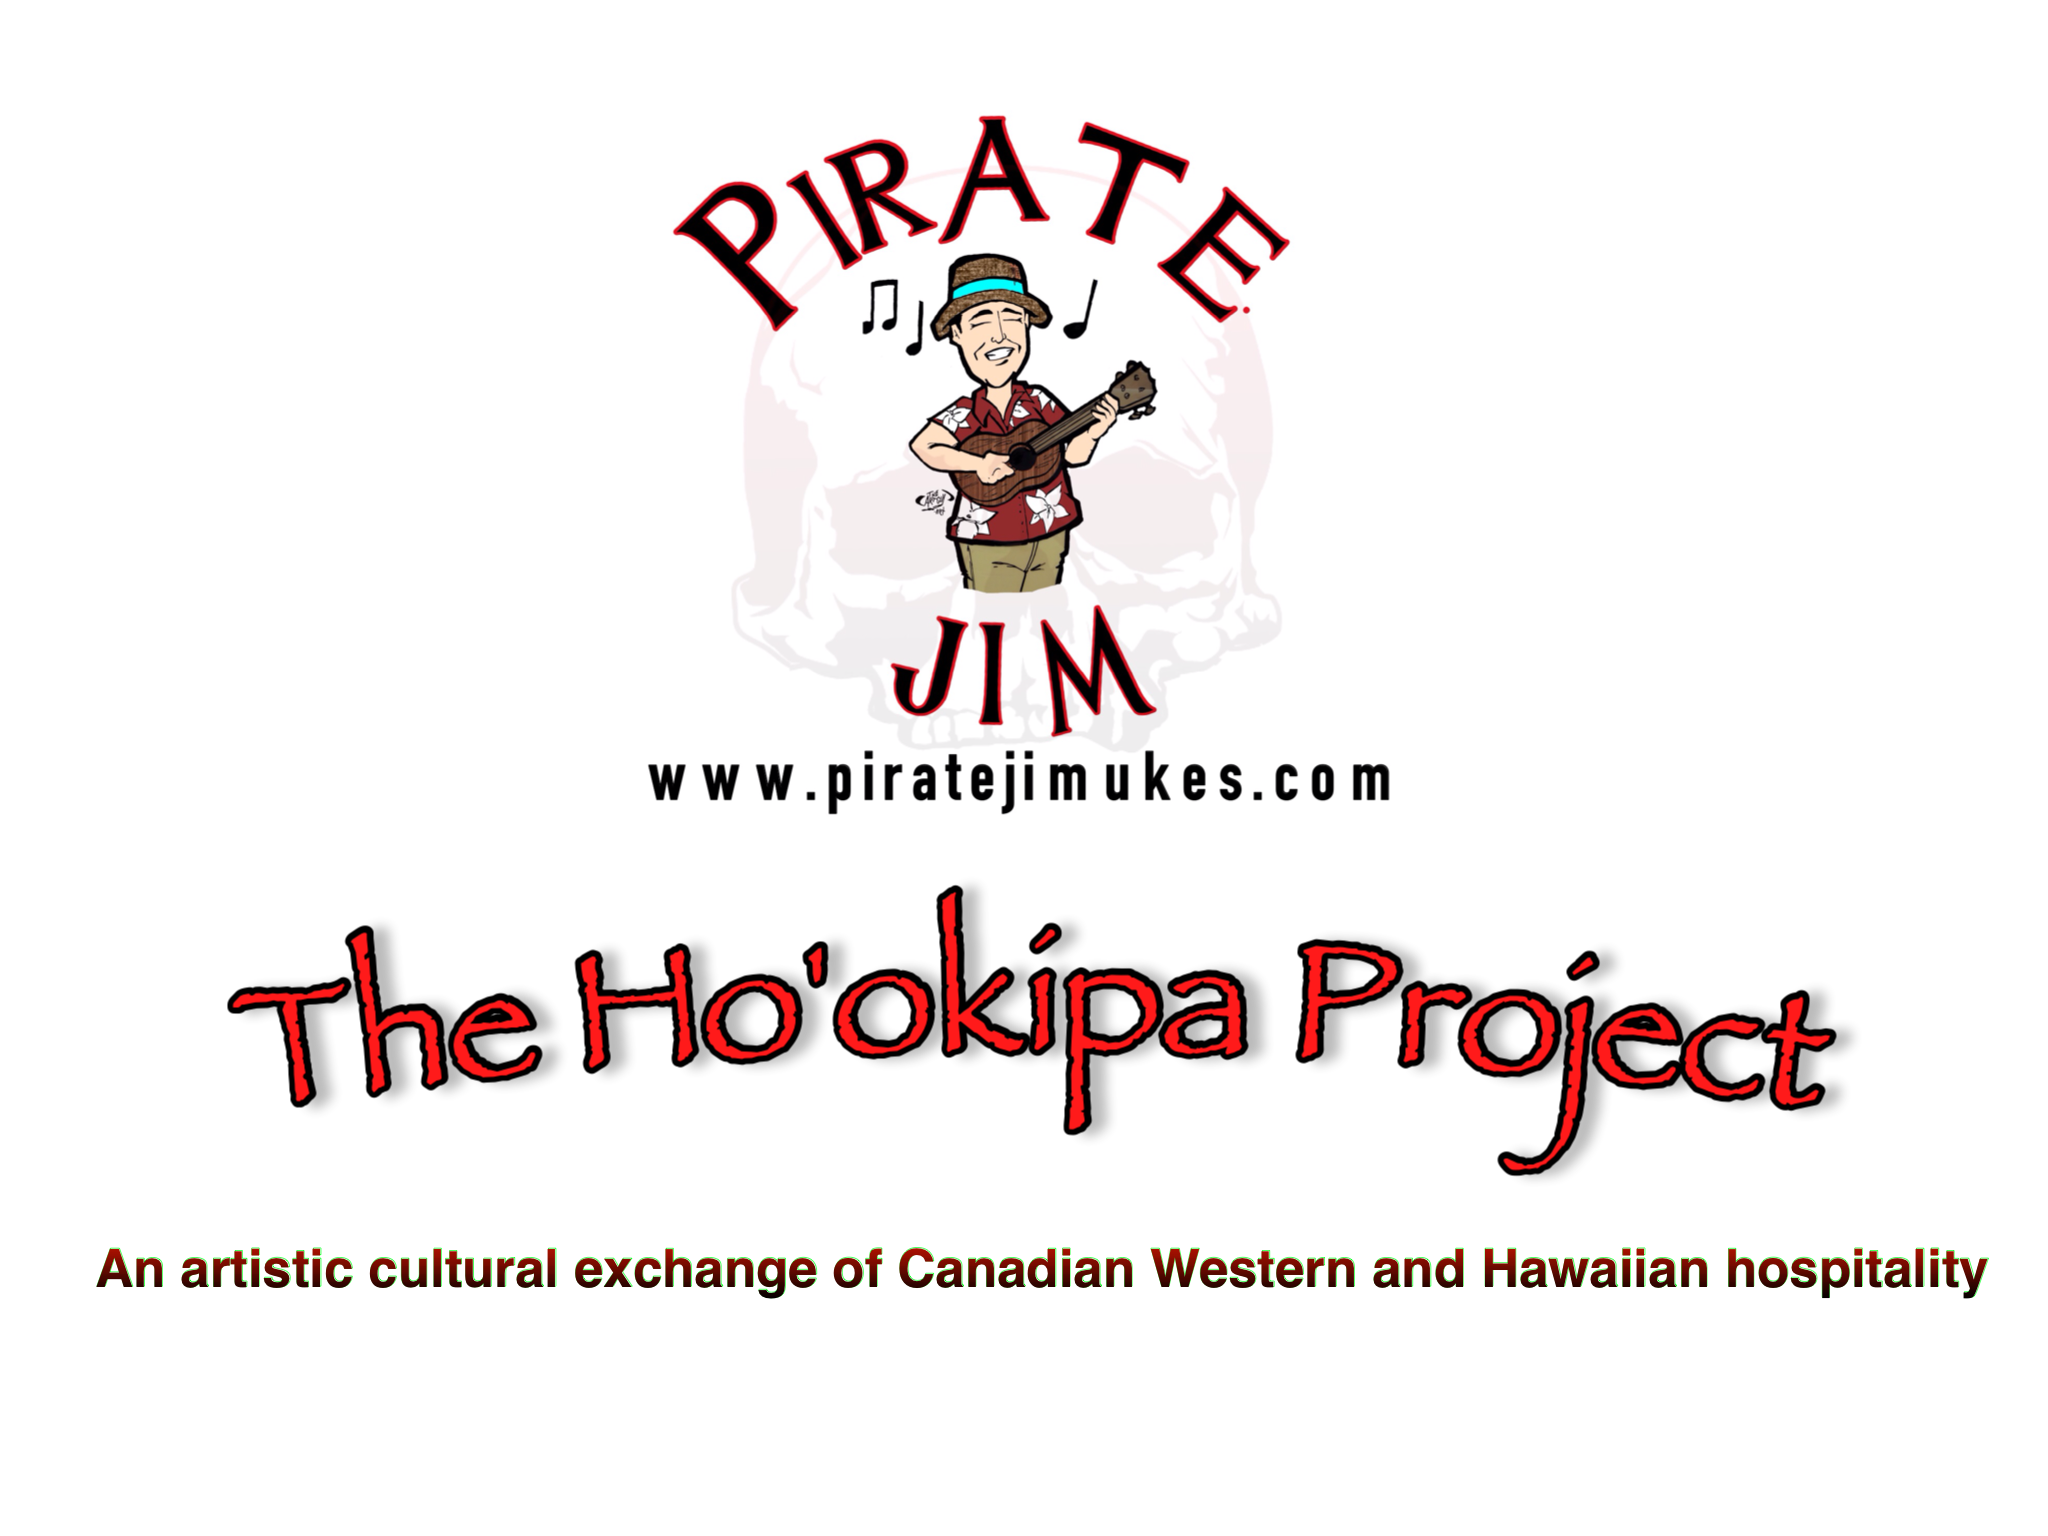 https://www.kickstarter.com/projects/piratejim/the-hookipa-project